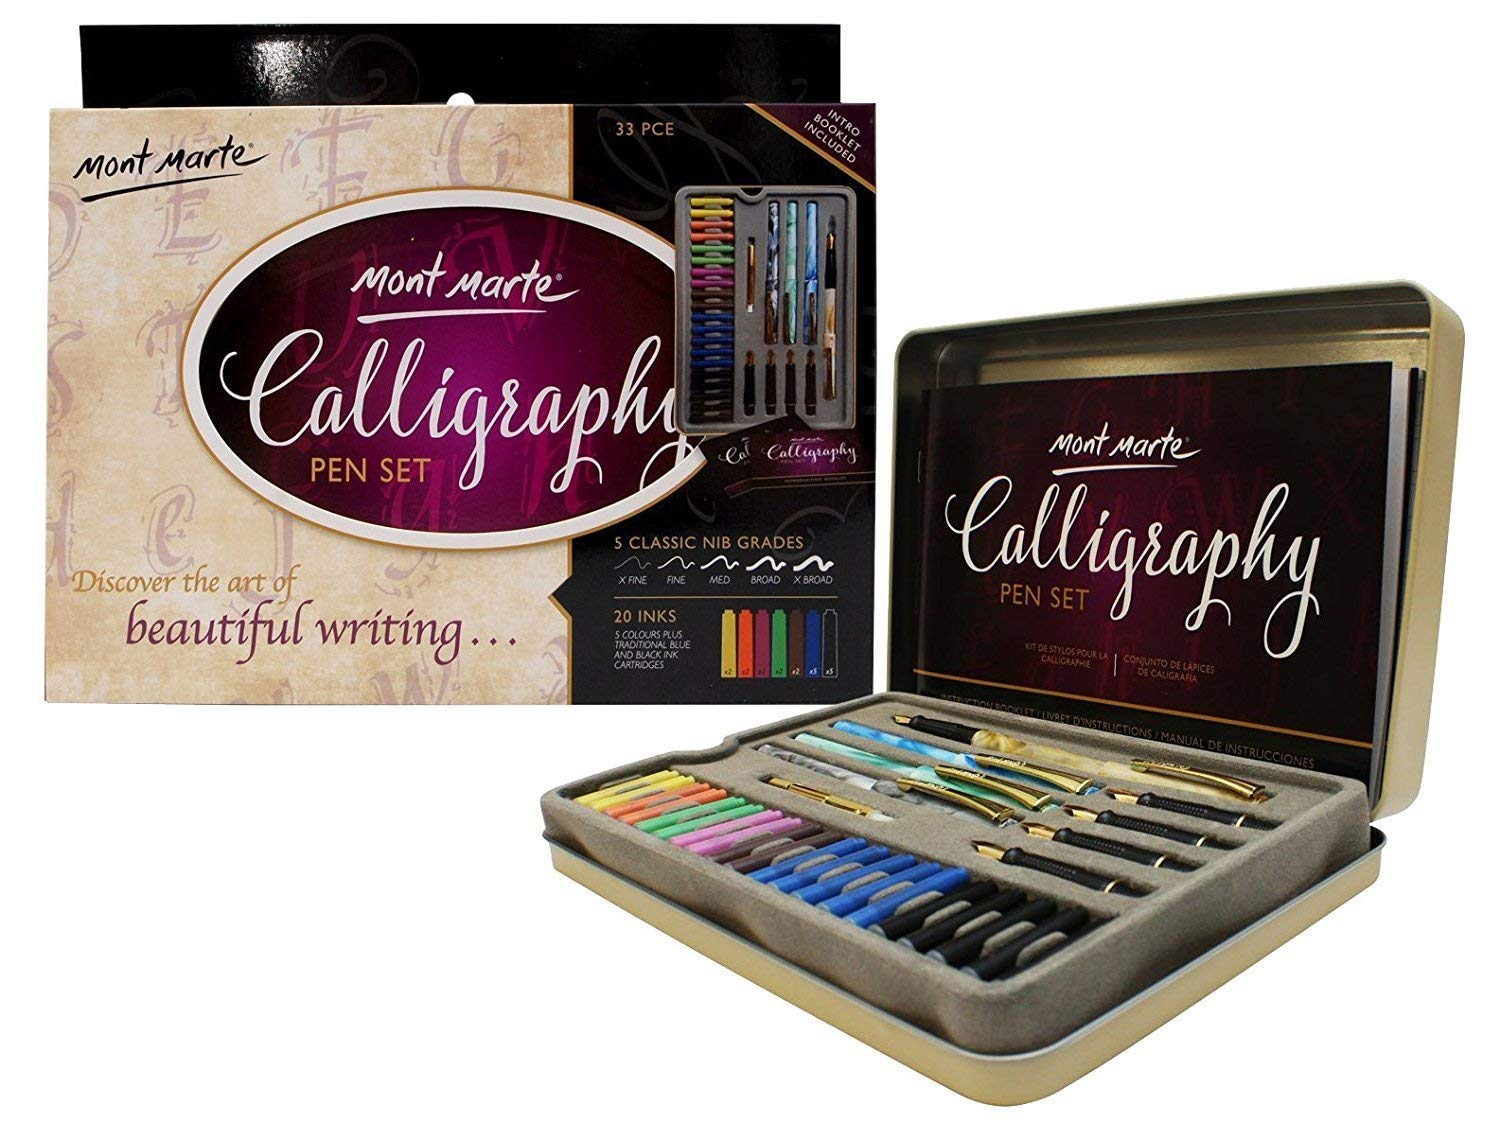 Mont Marte Calligraphy Set, 33 Piece. Includes Calligraphy Pens, Calligraphy Nibs, Ink Cartridges, Introduction Booklet and Exercise Booklet. by Mont Marte (Image #1)